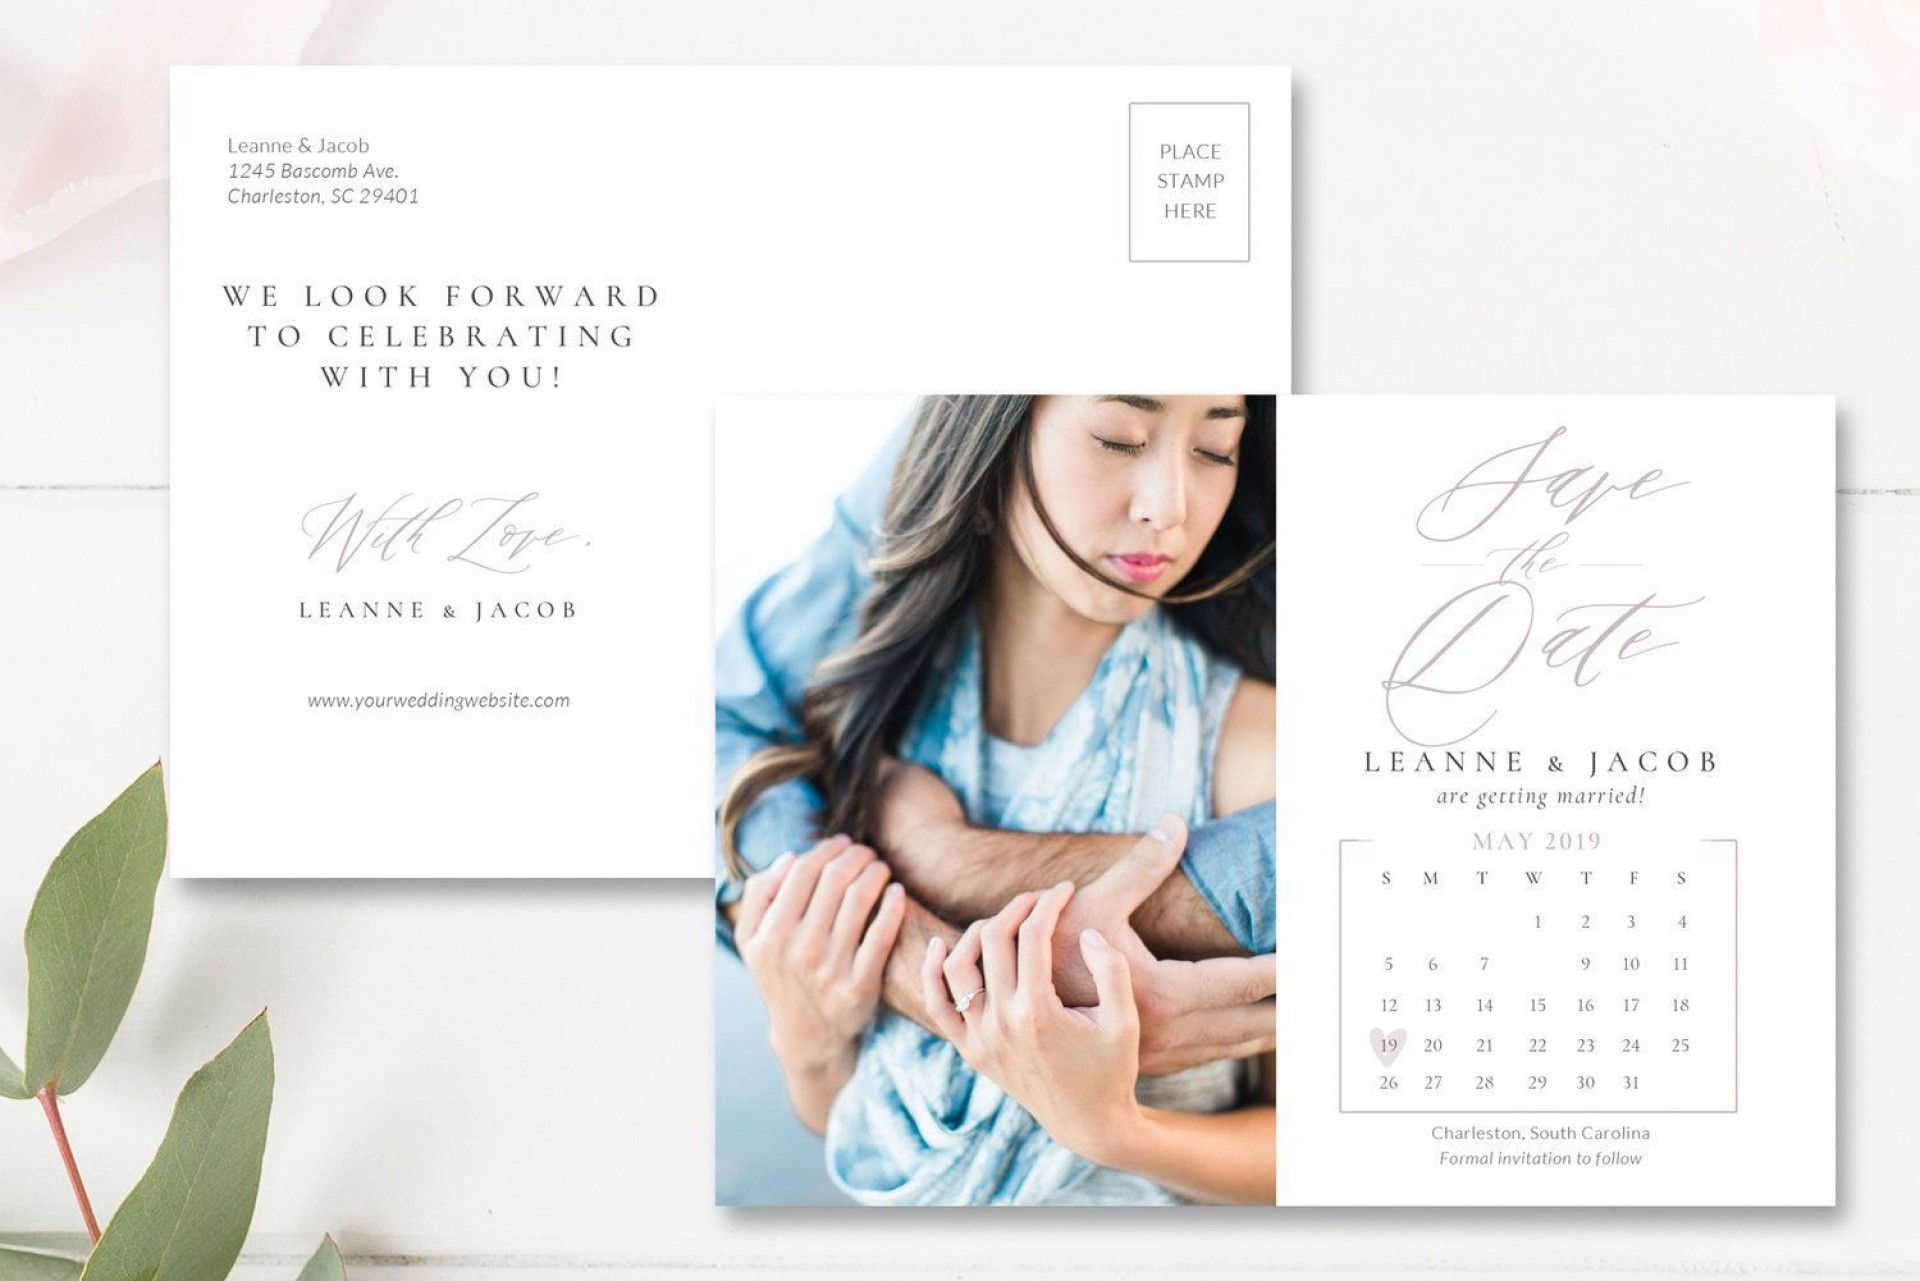 004 Simple Save The Date Postcard Template Inspiration  Diy Free Birthday1920